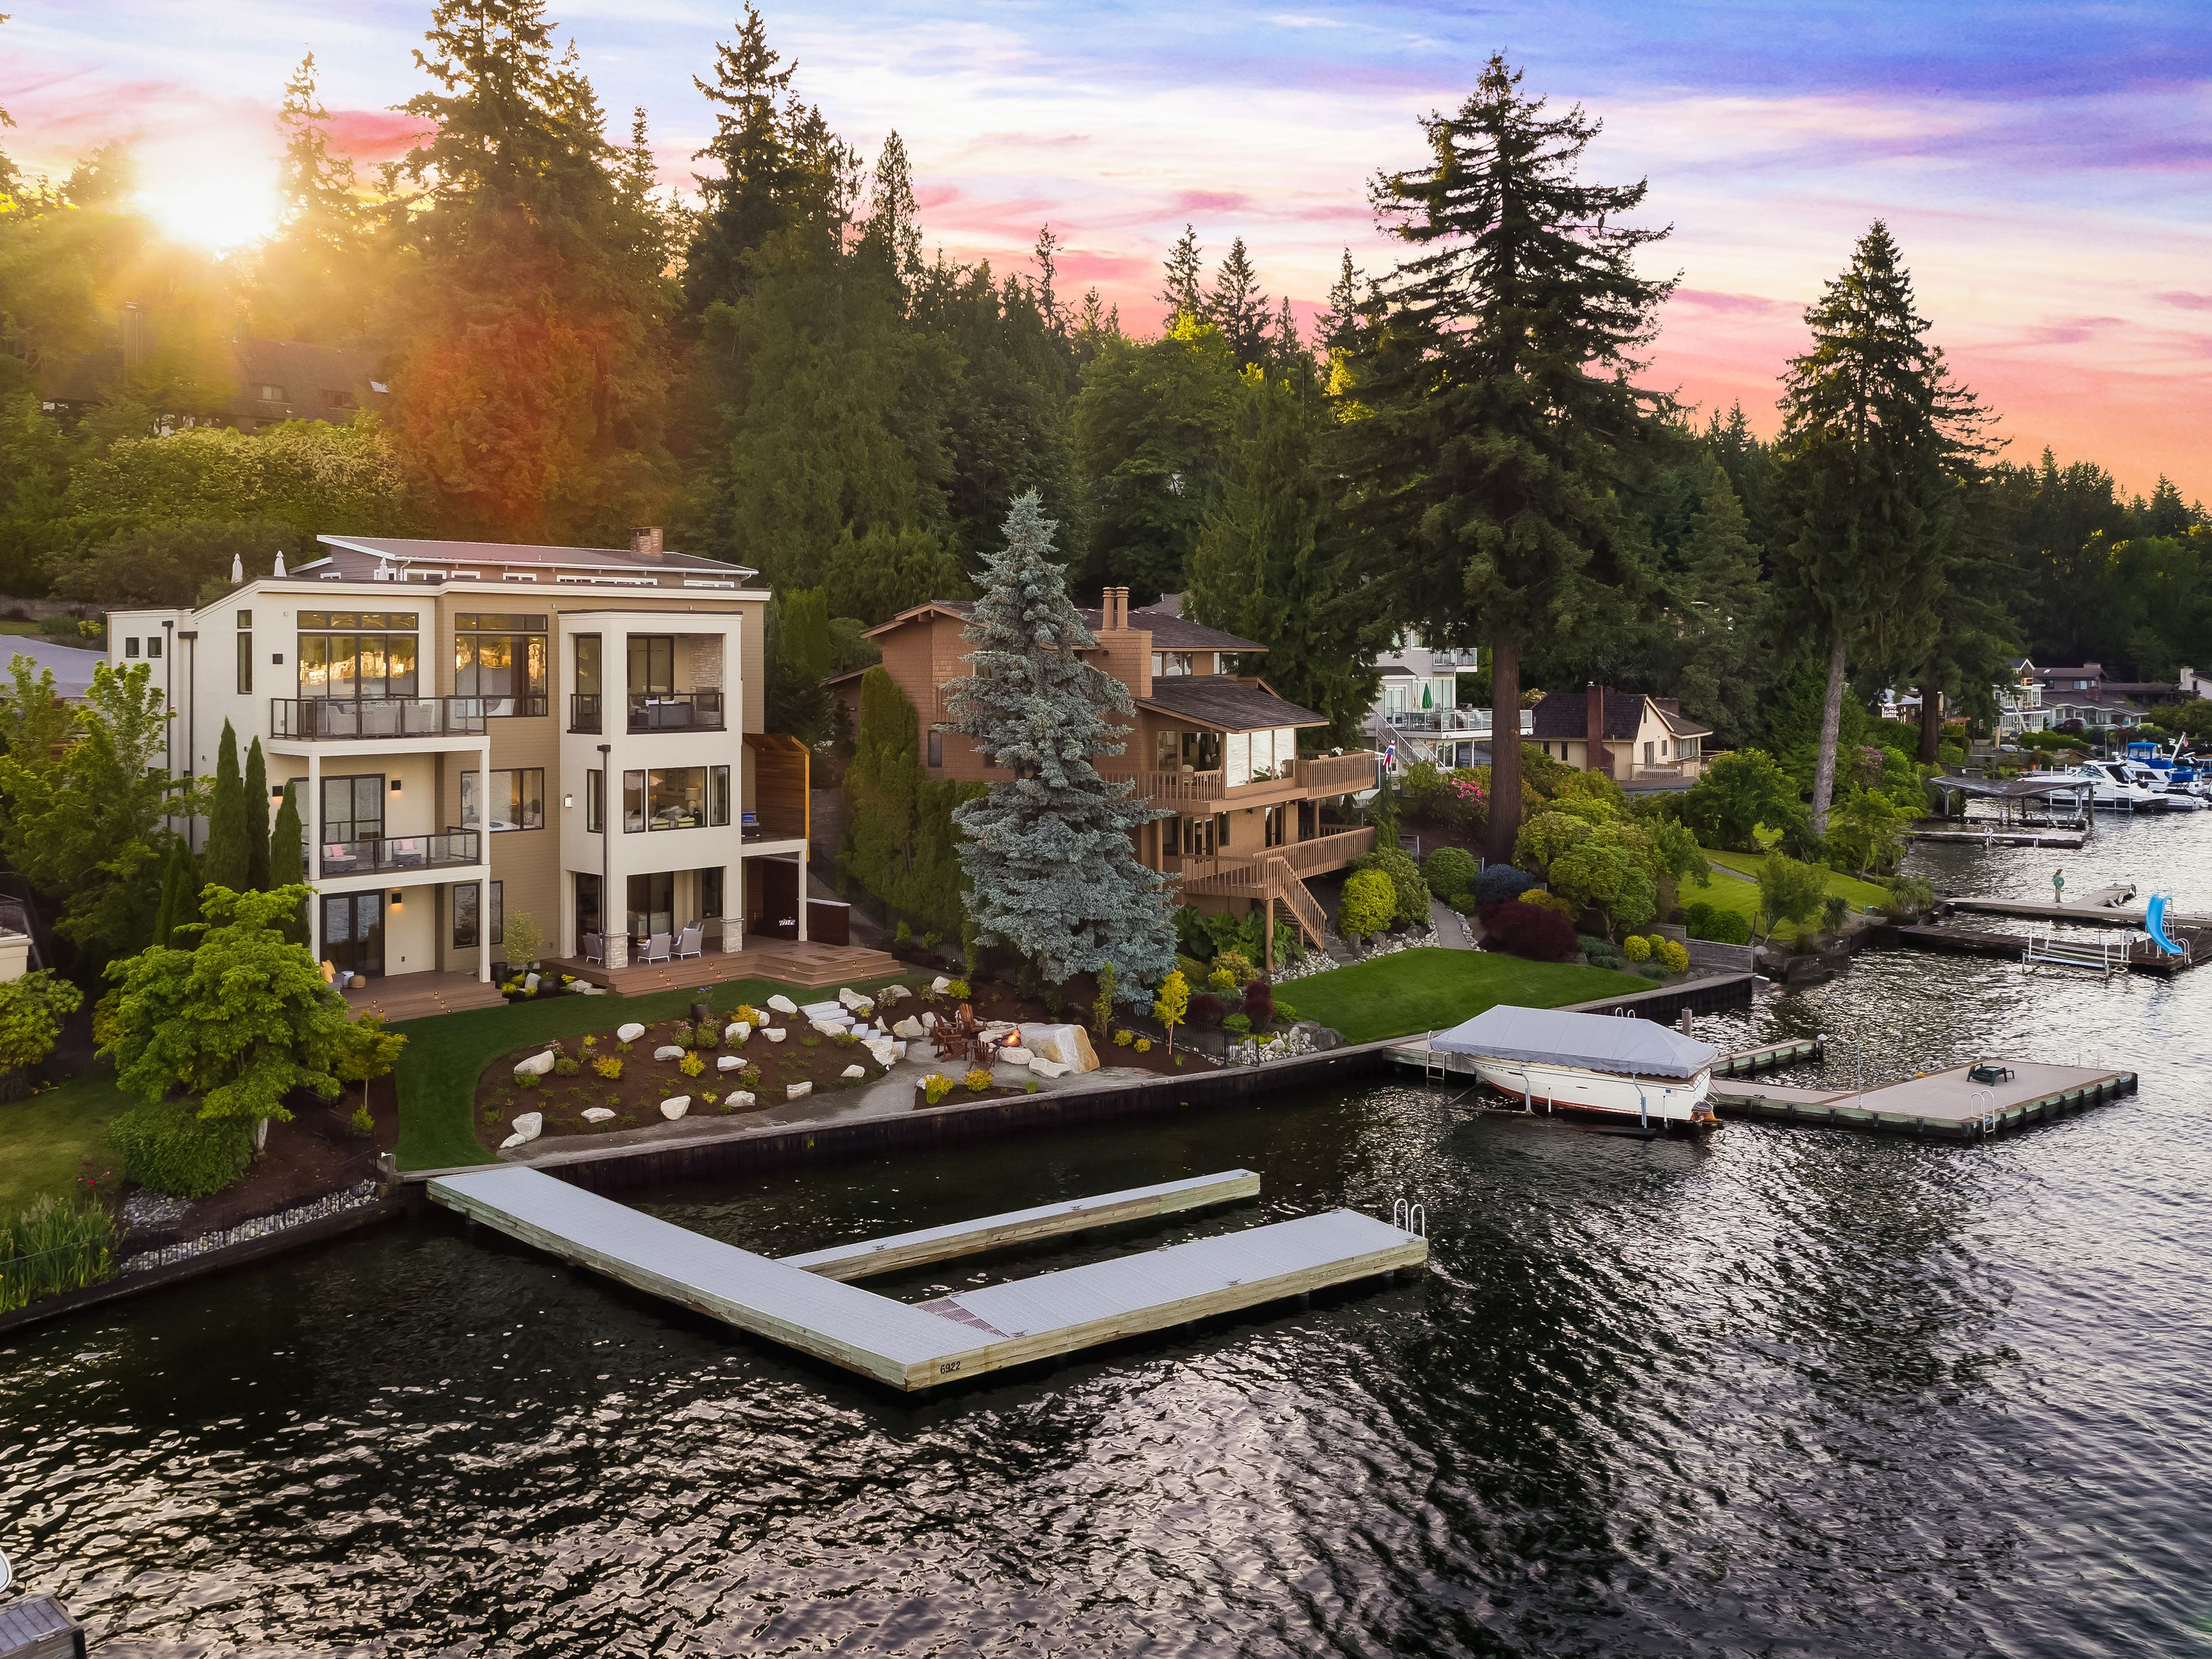 10 Expensive Things Previously Owned By Billionaire Paul Allen